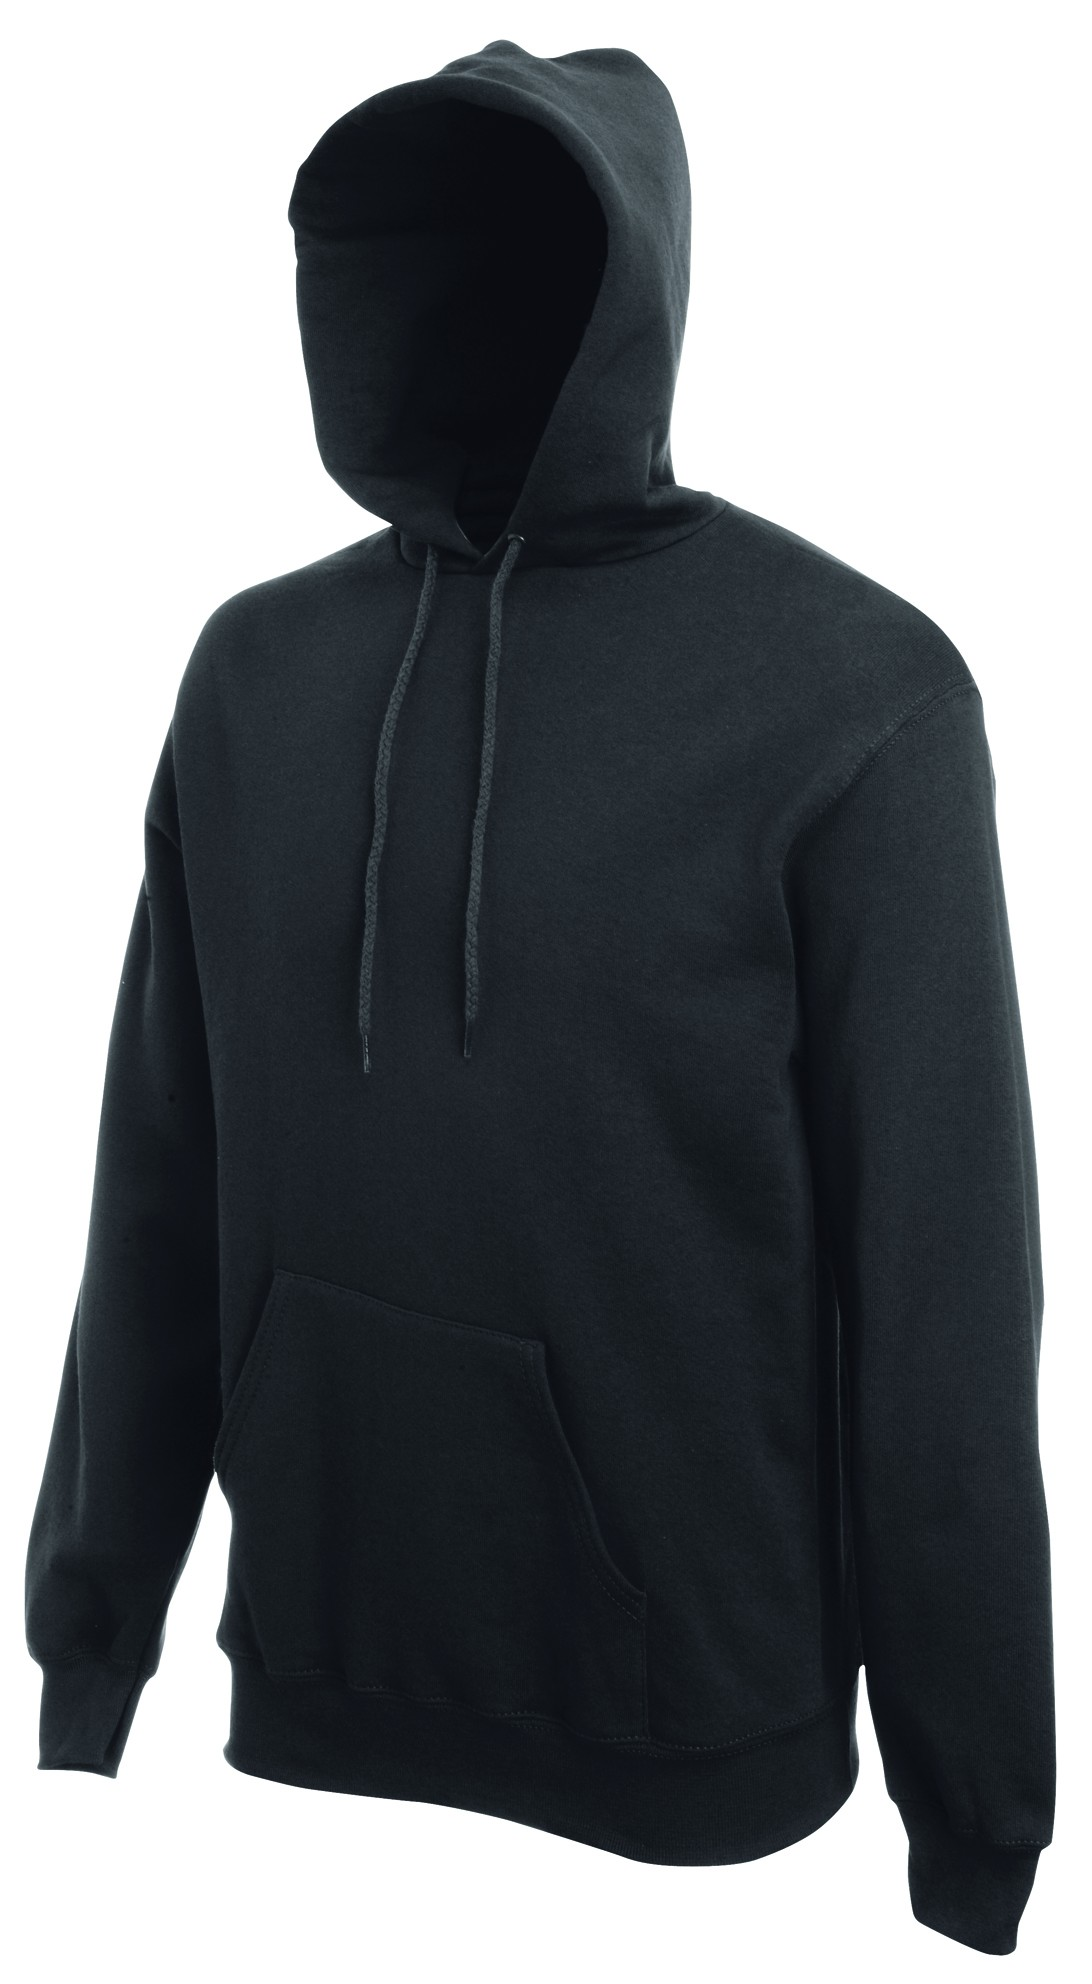 Fruit of the Loom hoodie sweaterSC244C Charcoal